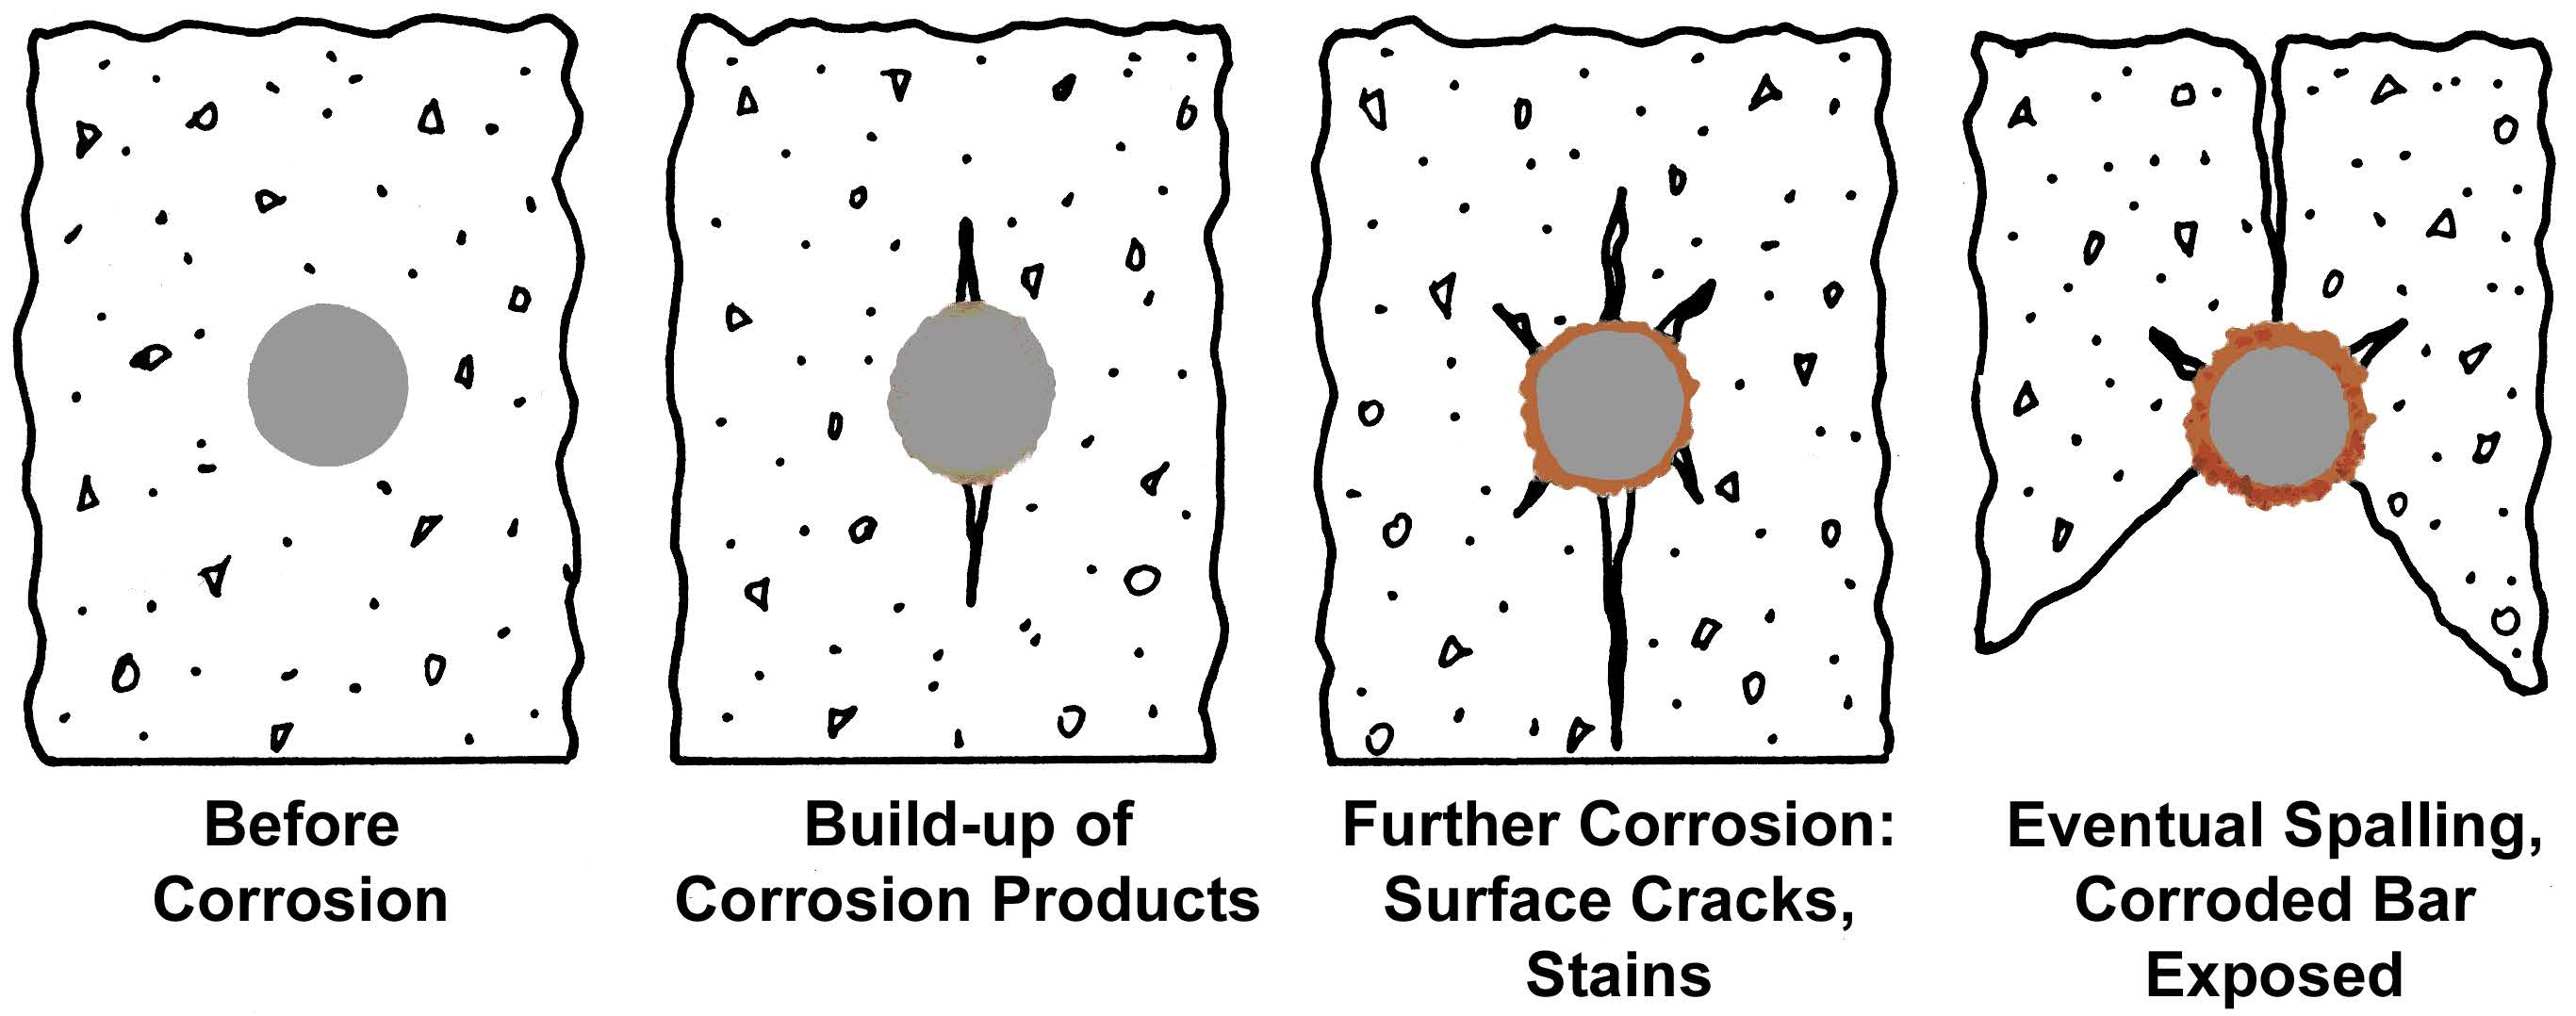 corrosion of reinforced concrete Abstract studies were made to determine the cause of accelerated corrosion of reinforcing steel in a concrete bridge in a salt water environment there was good reason to believe that macro-galvanic corrosion was involved resistivity and corrosion cell ratio charts indicate that the resistivity.